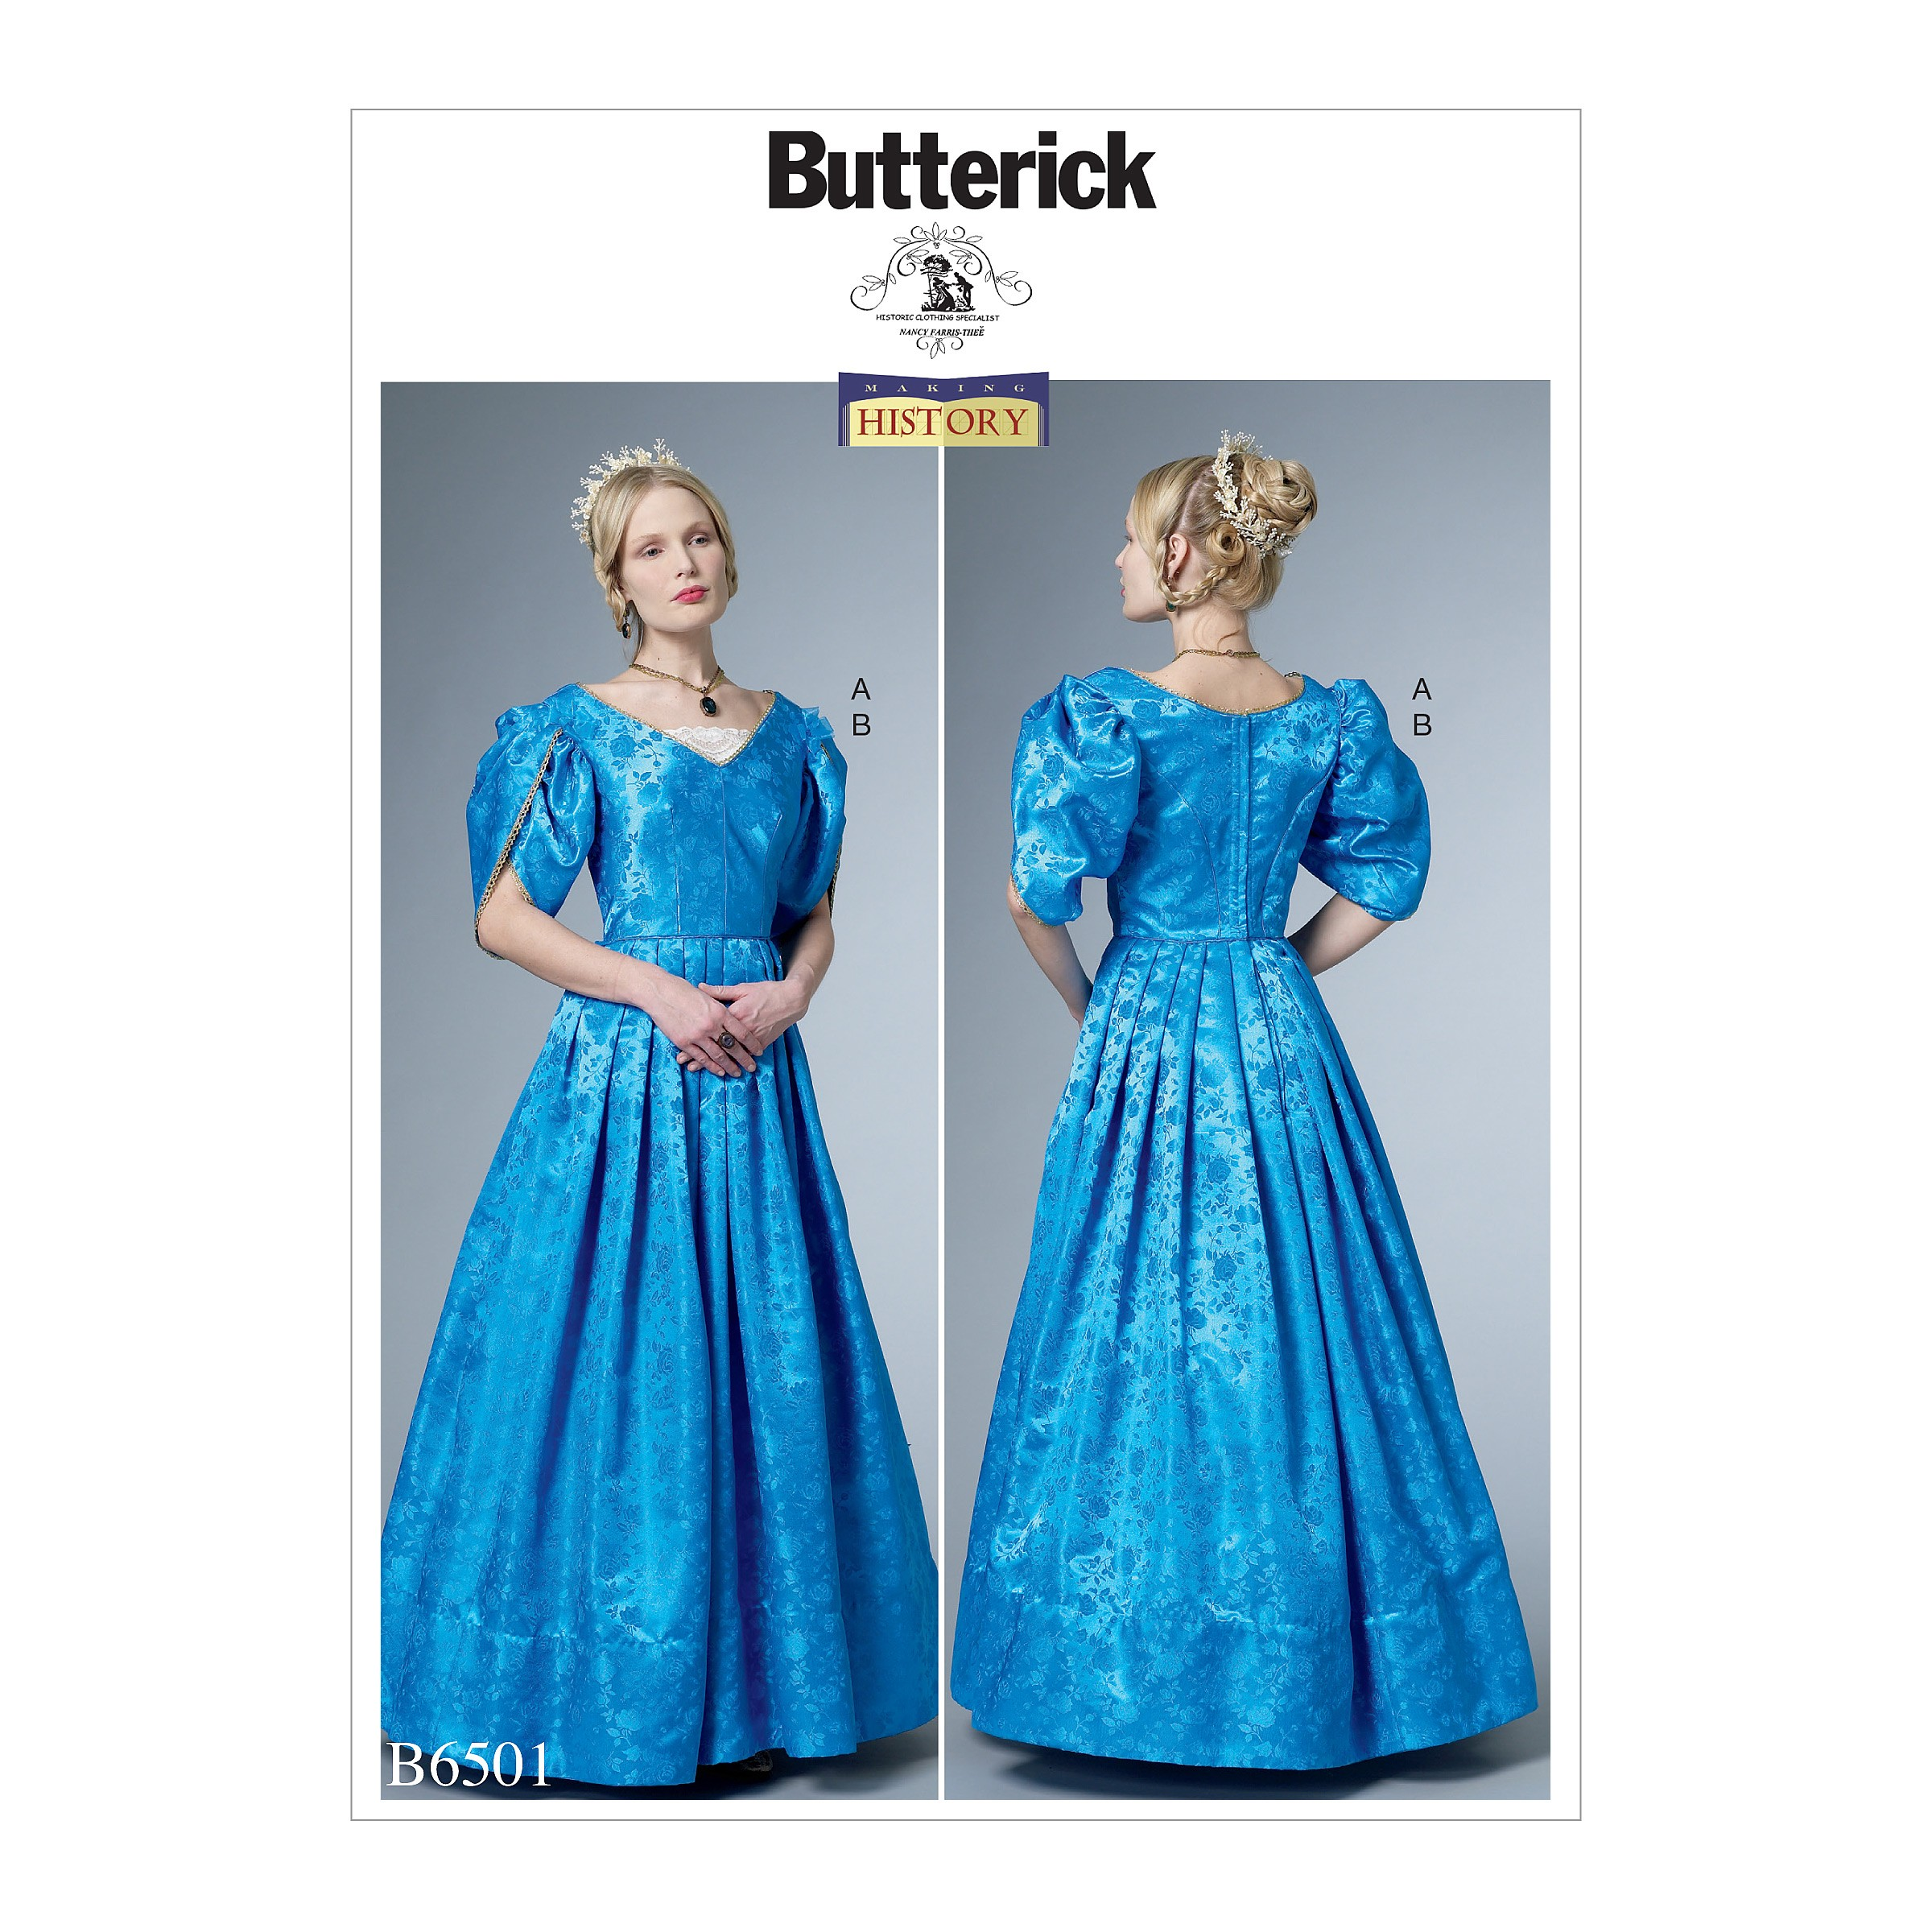 Butterick Sewing Pattern 6501Misses' Dress Boned Bodice, Lined Tulip Sleeves